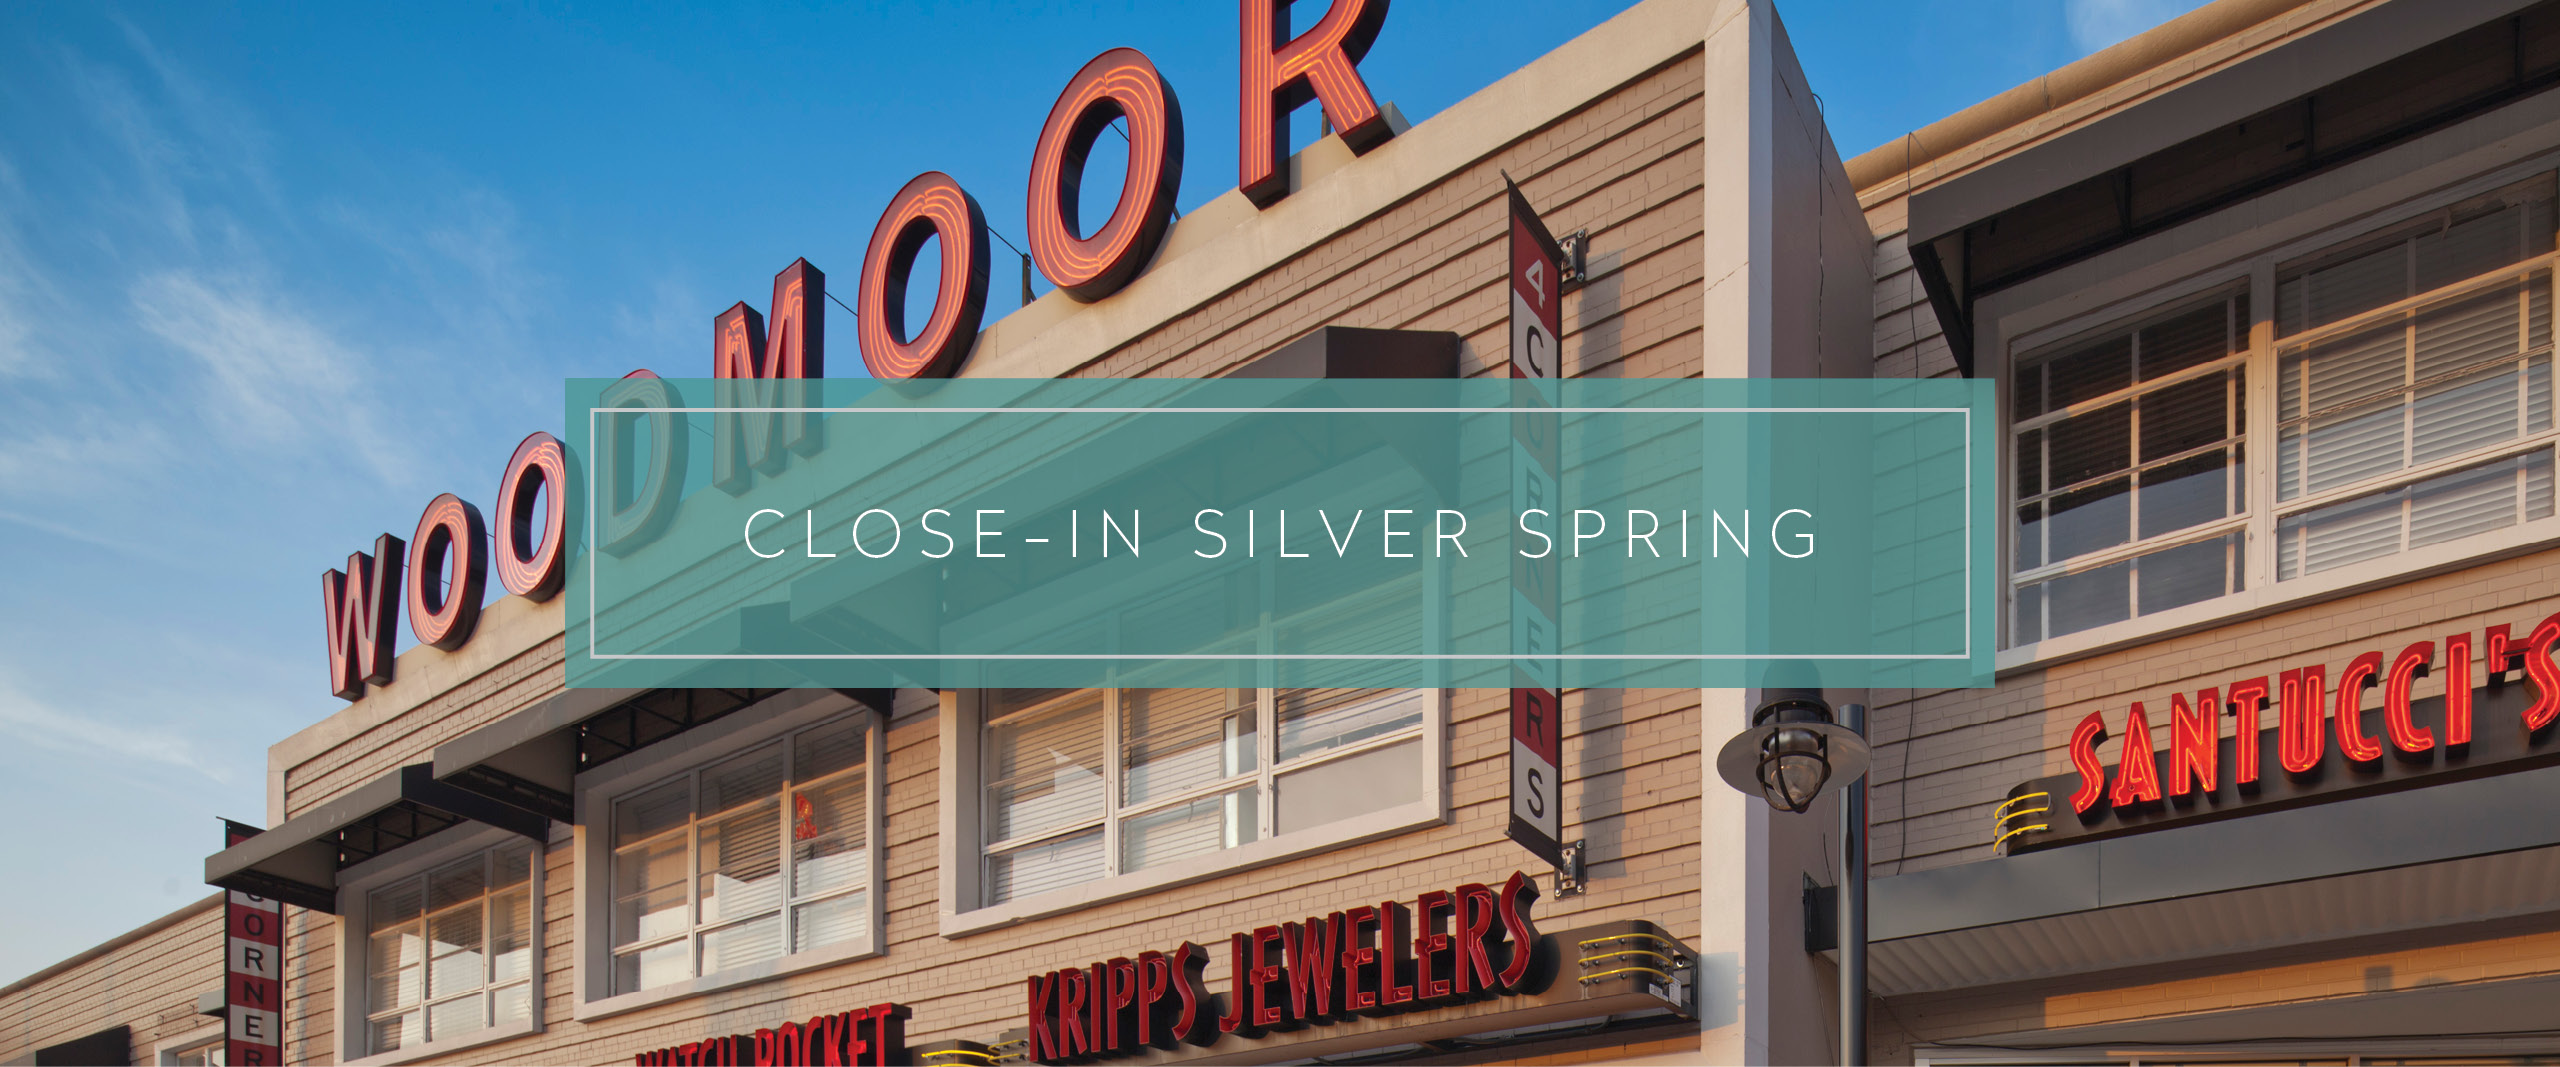 CLose in silver spring